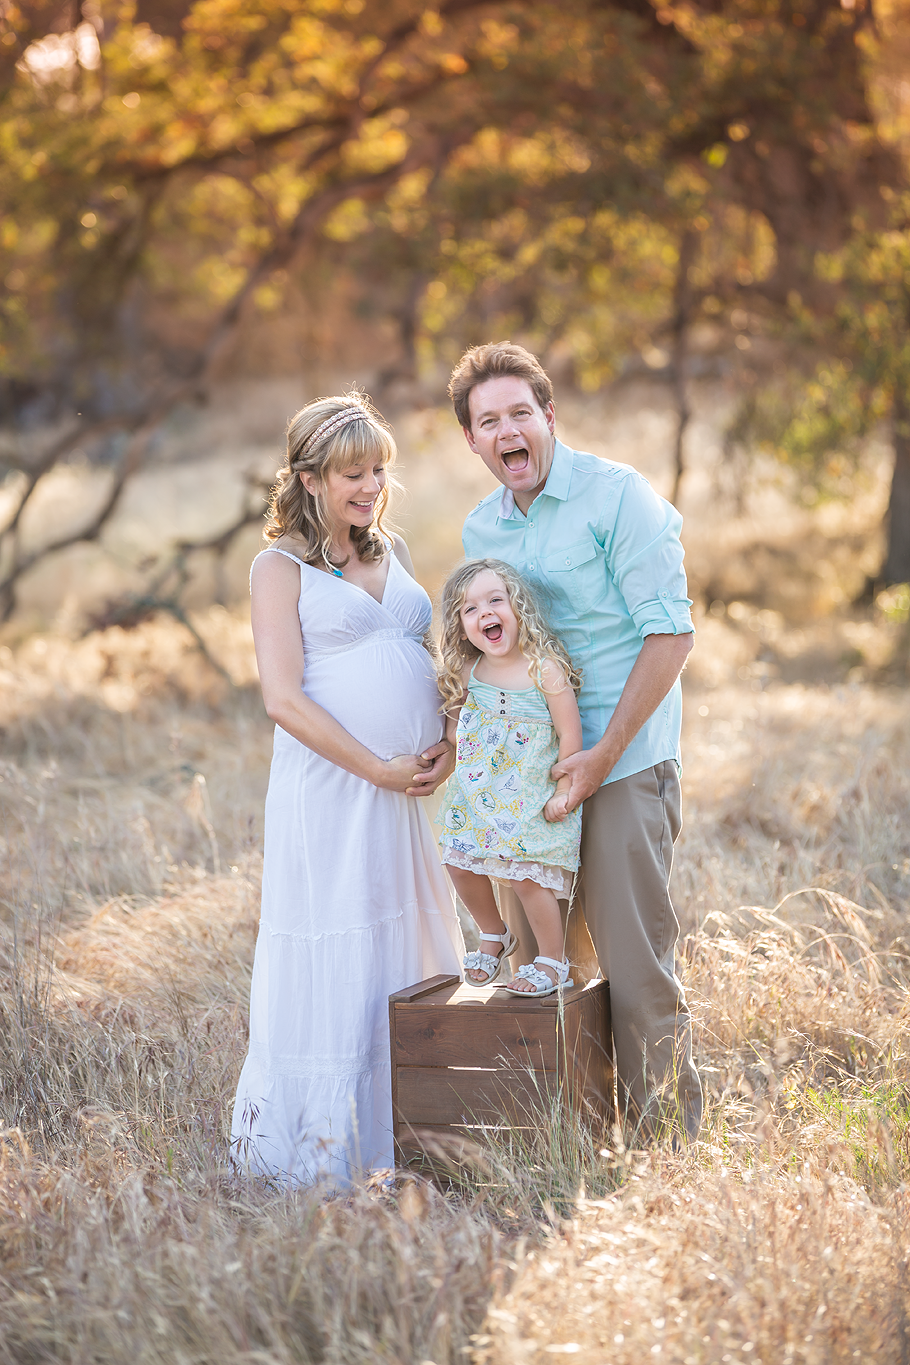 San Diego Maternity Photographer - Sarah-101-Edit.png